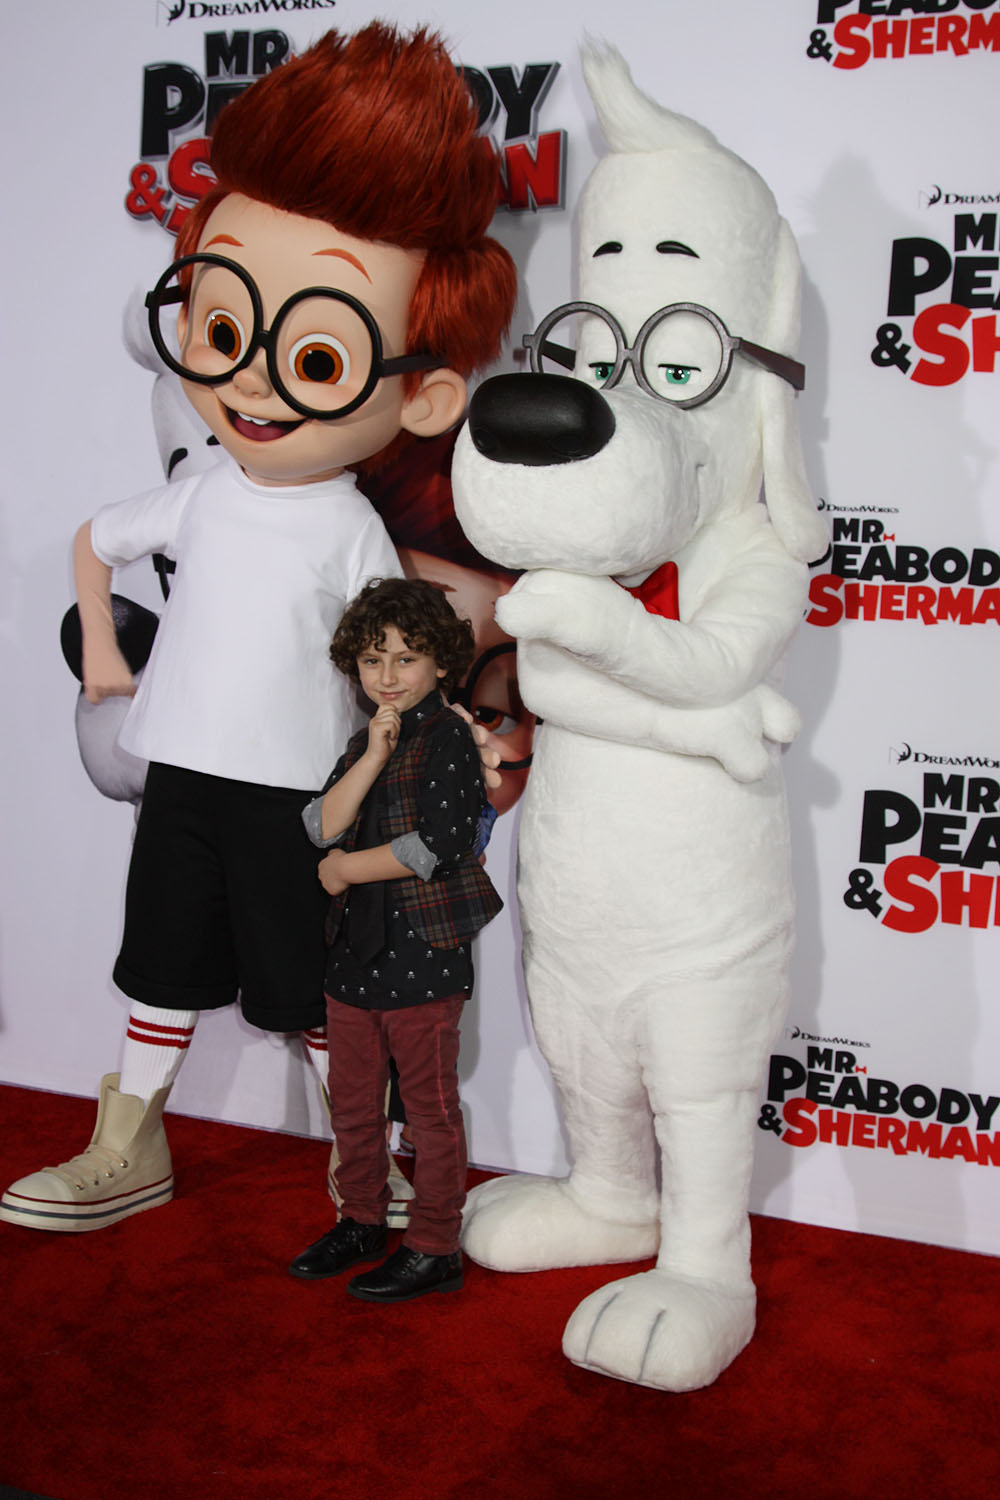 Exclusive Photos From The Holly WOOF MR PEABODY AND